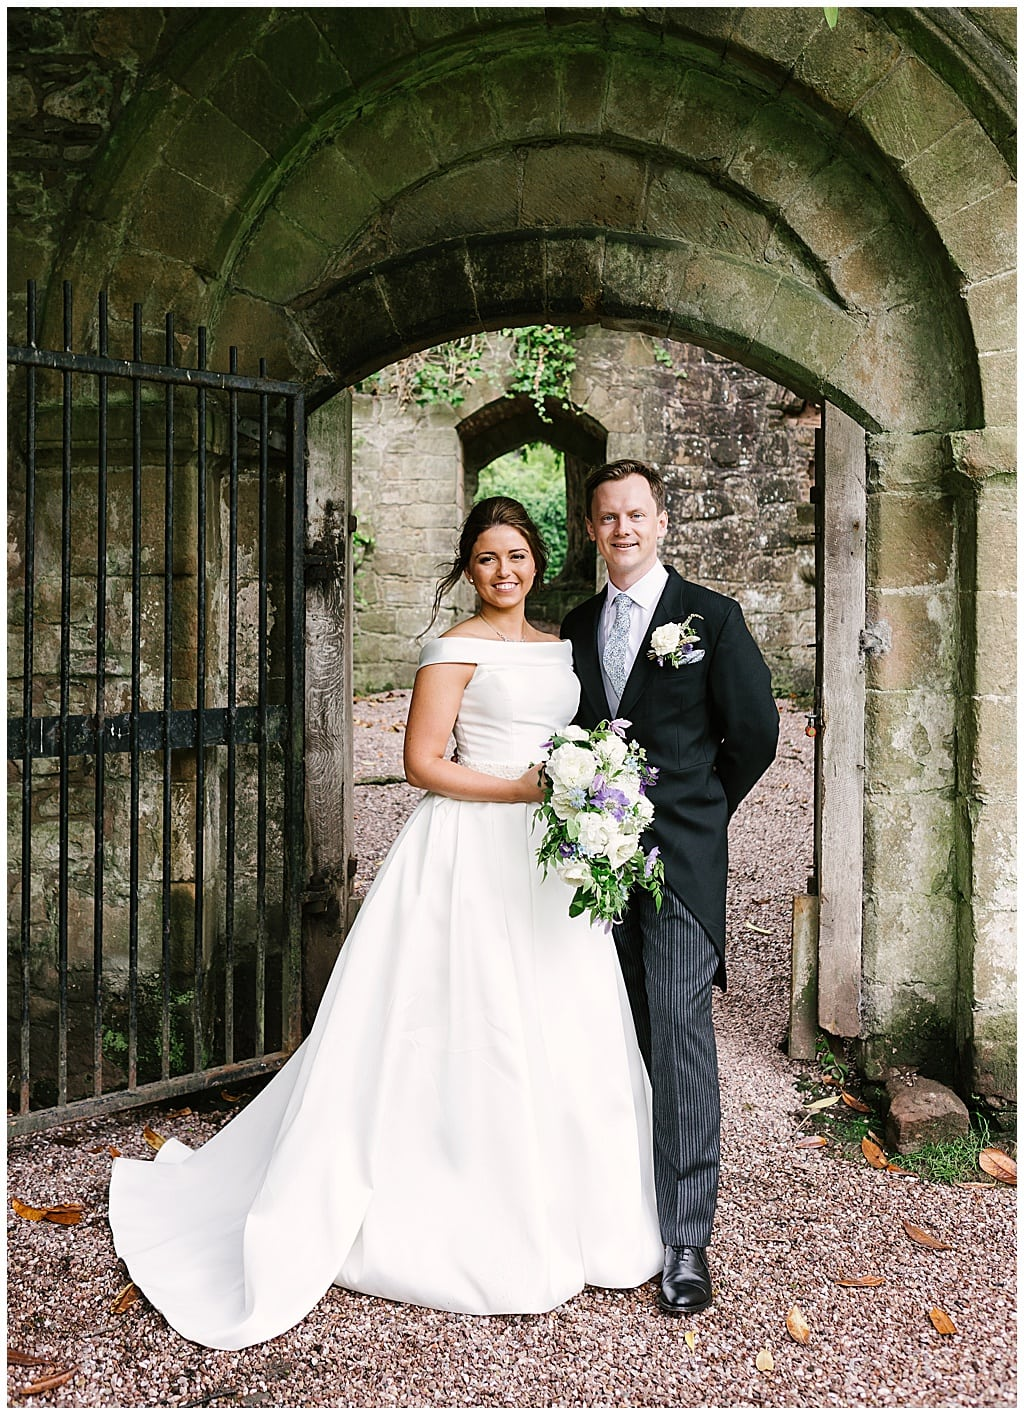 Elegant Suzanne Neville Gown | Lilleshall Abbey wedding photography